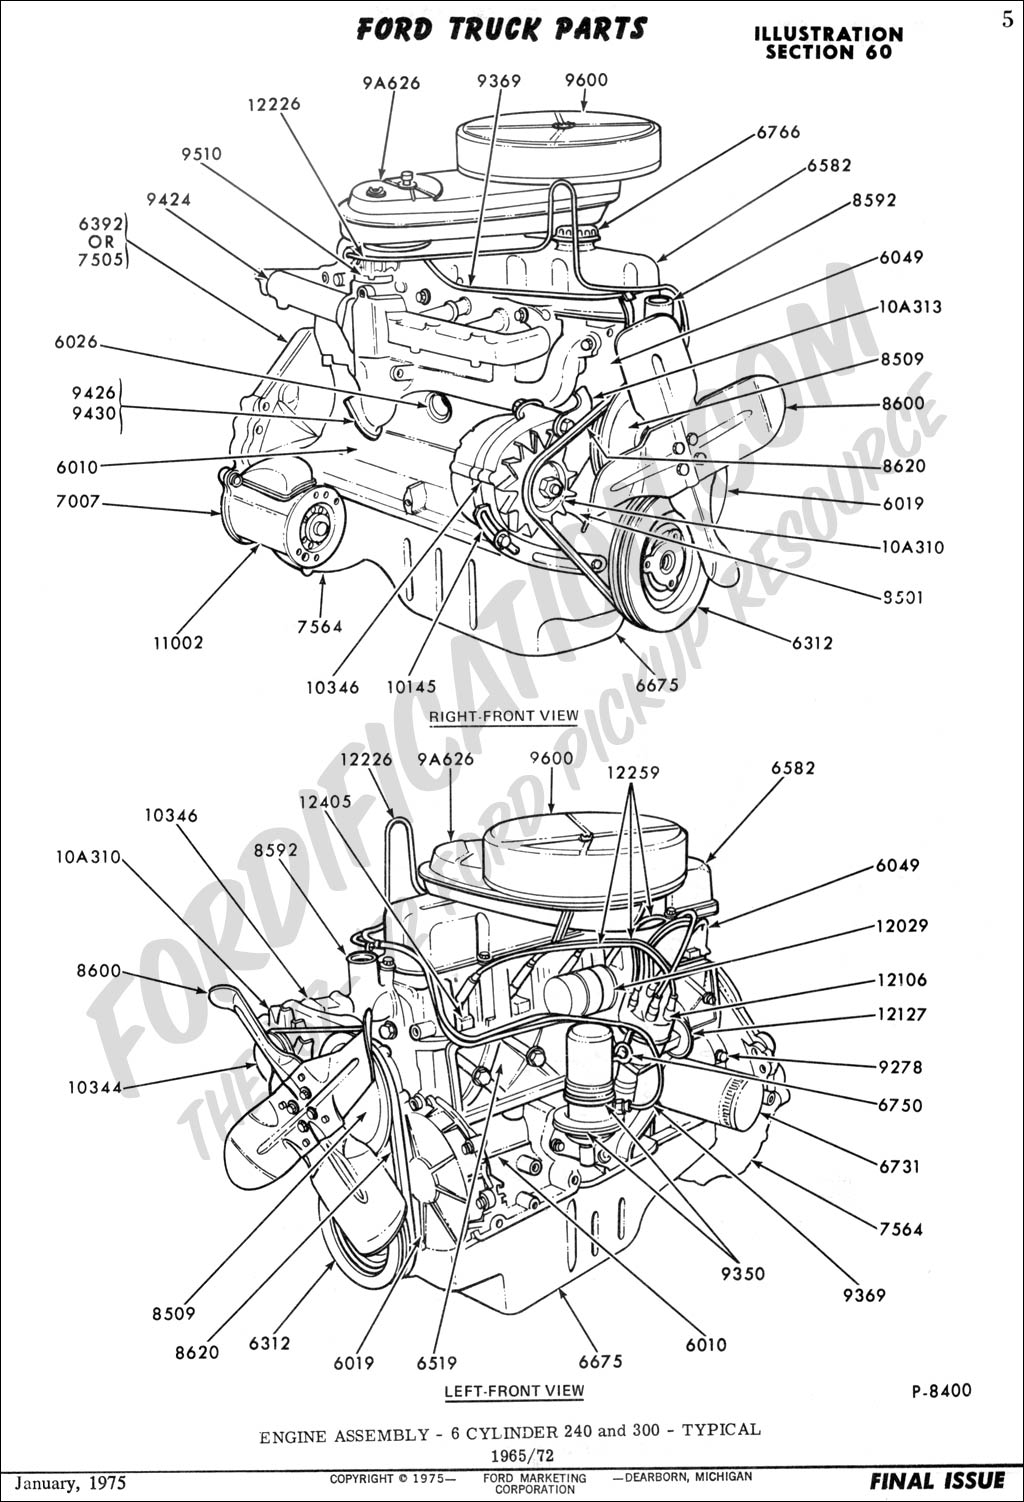 Schematics e also Brake System moreover 356ck 93 Toyota Runner Need Diagram Vacuum also 1uf82 Fuse Box Diagram 2001 Ford Expedition additionally 4h5ck Ford F150 Lariat Own 2001 Ford F150 Extended Cab Lariet. on 1995 ford f350 wiring diagrams